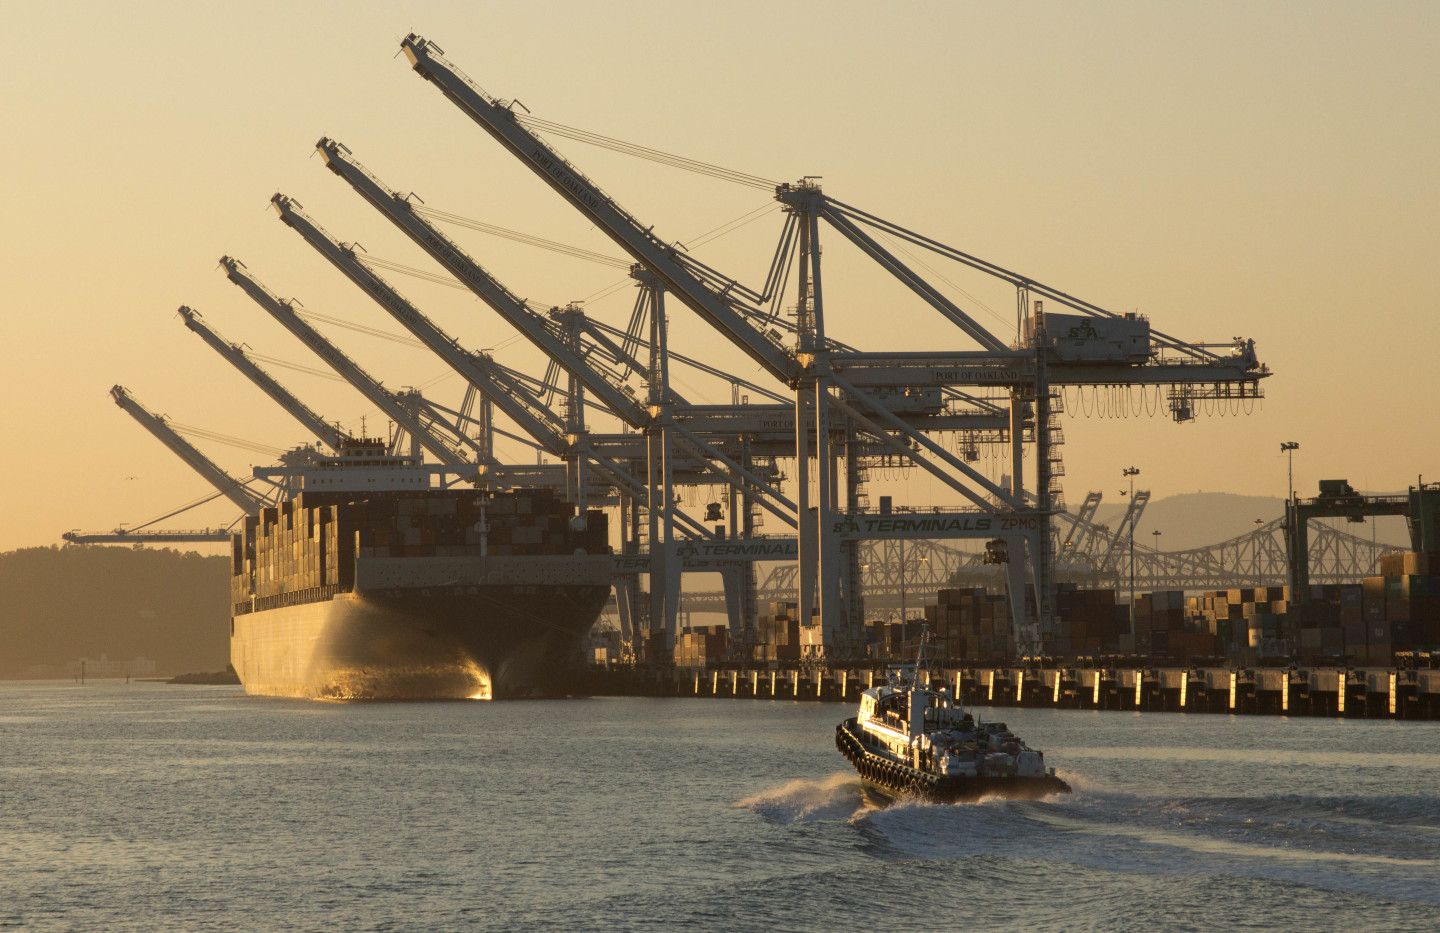 West Coast Dockworkers and Shippers Set to Discuss Contract Extension